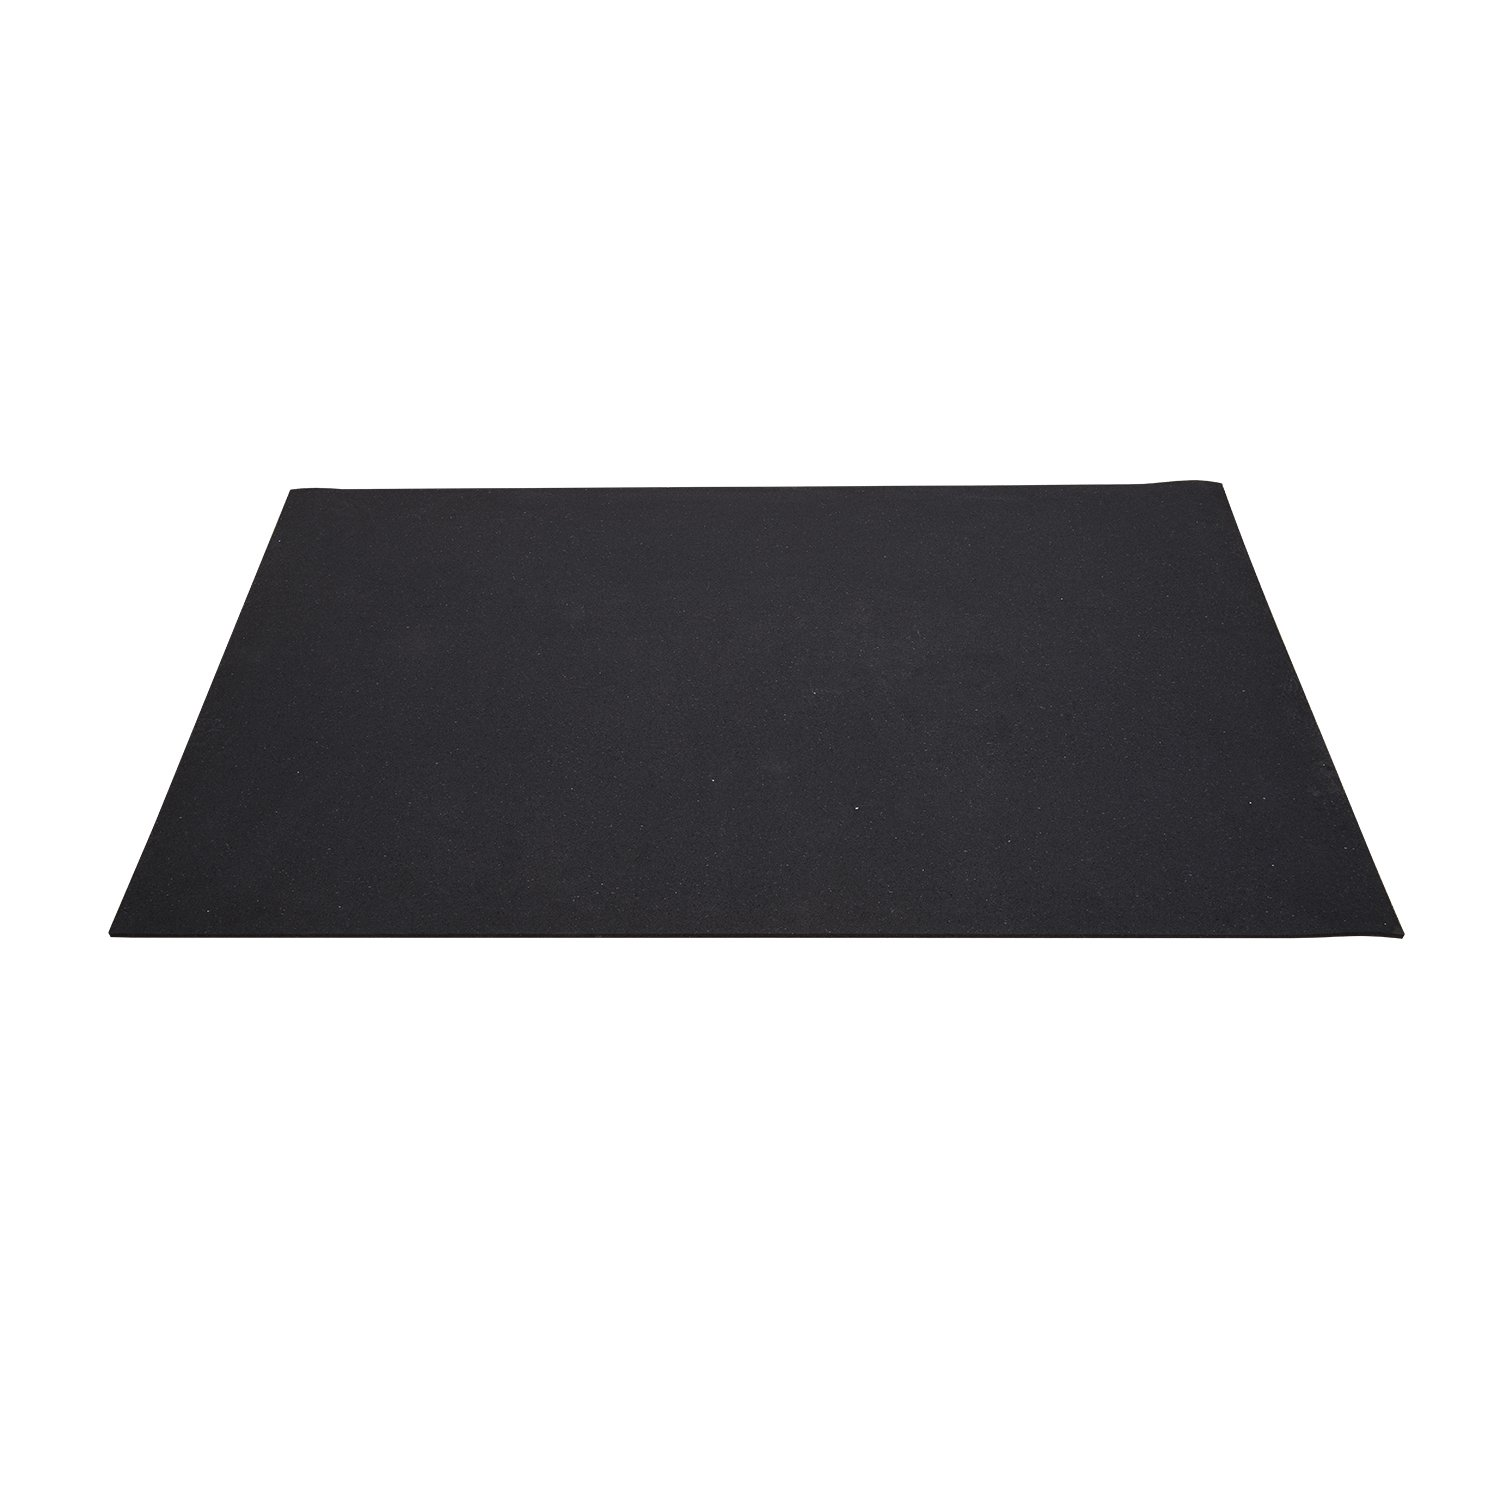 Soozier 6' Rubber Exercise Gym Floor Fitness Equipment Protection Mat - Black at Sears.com